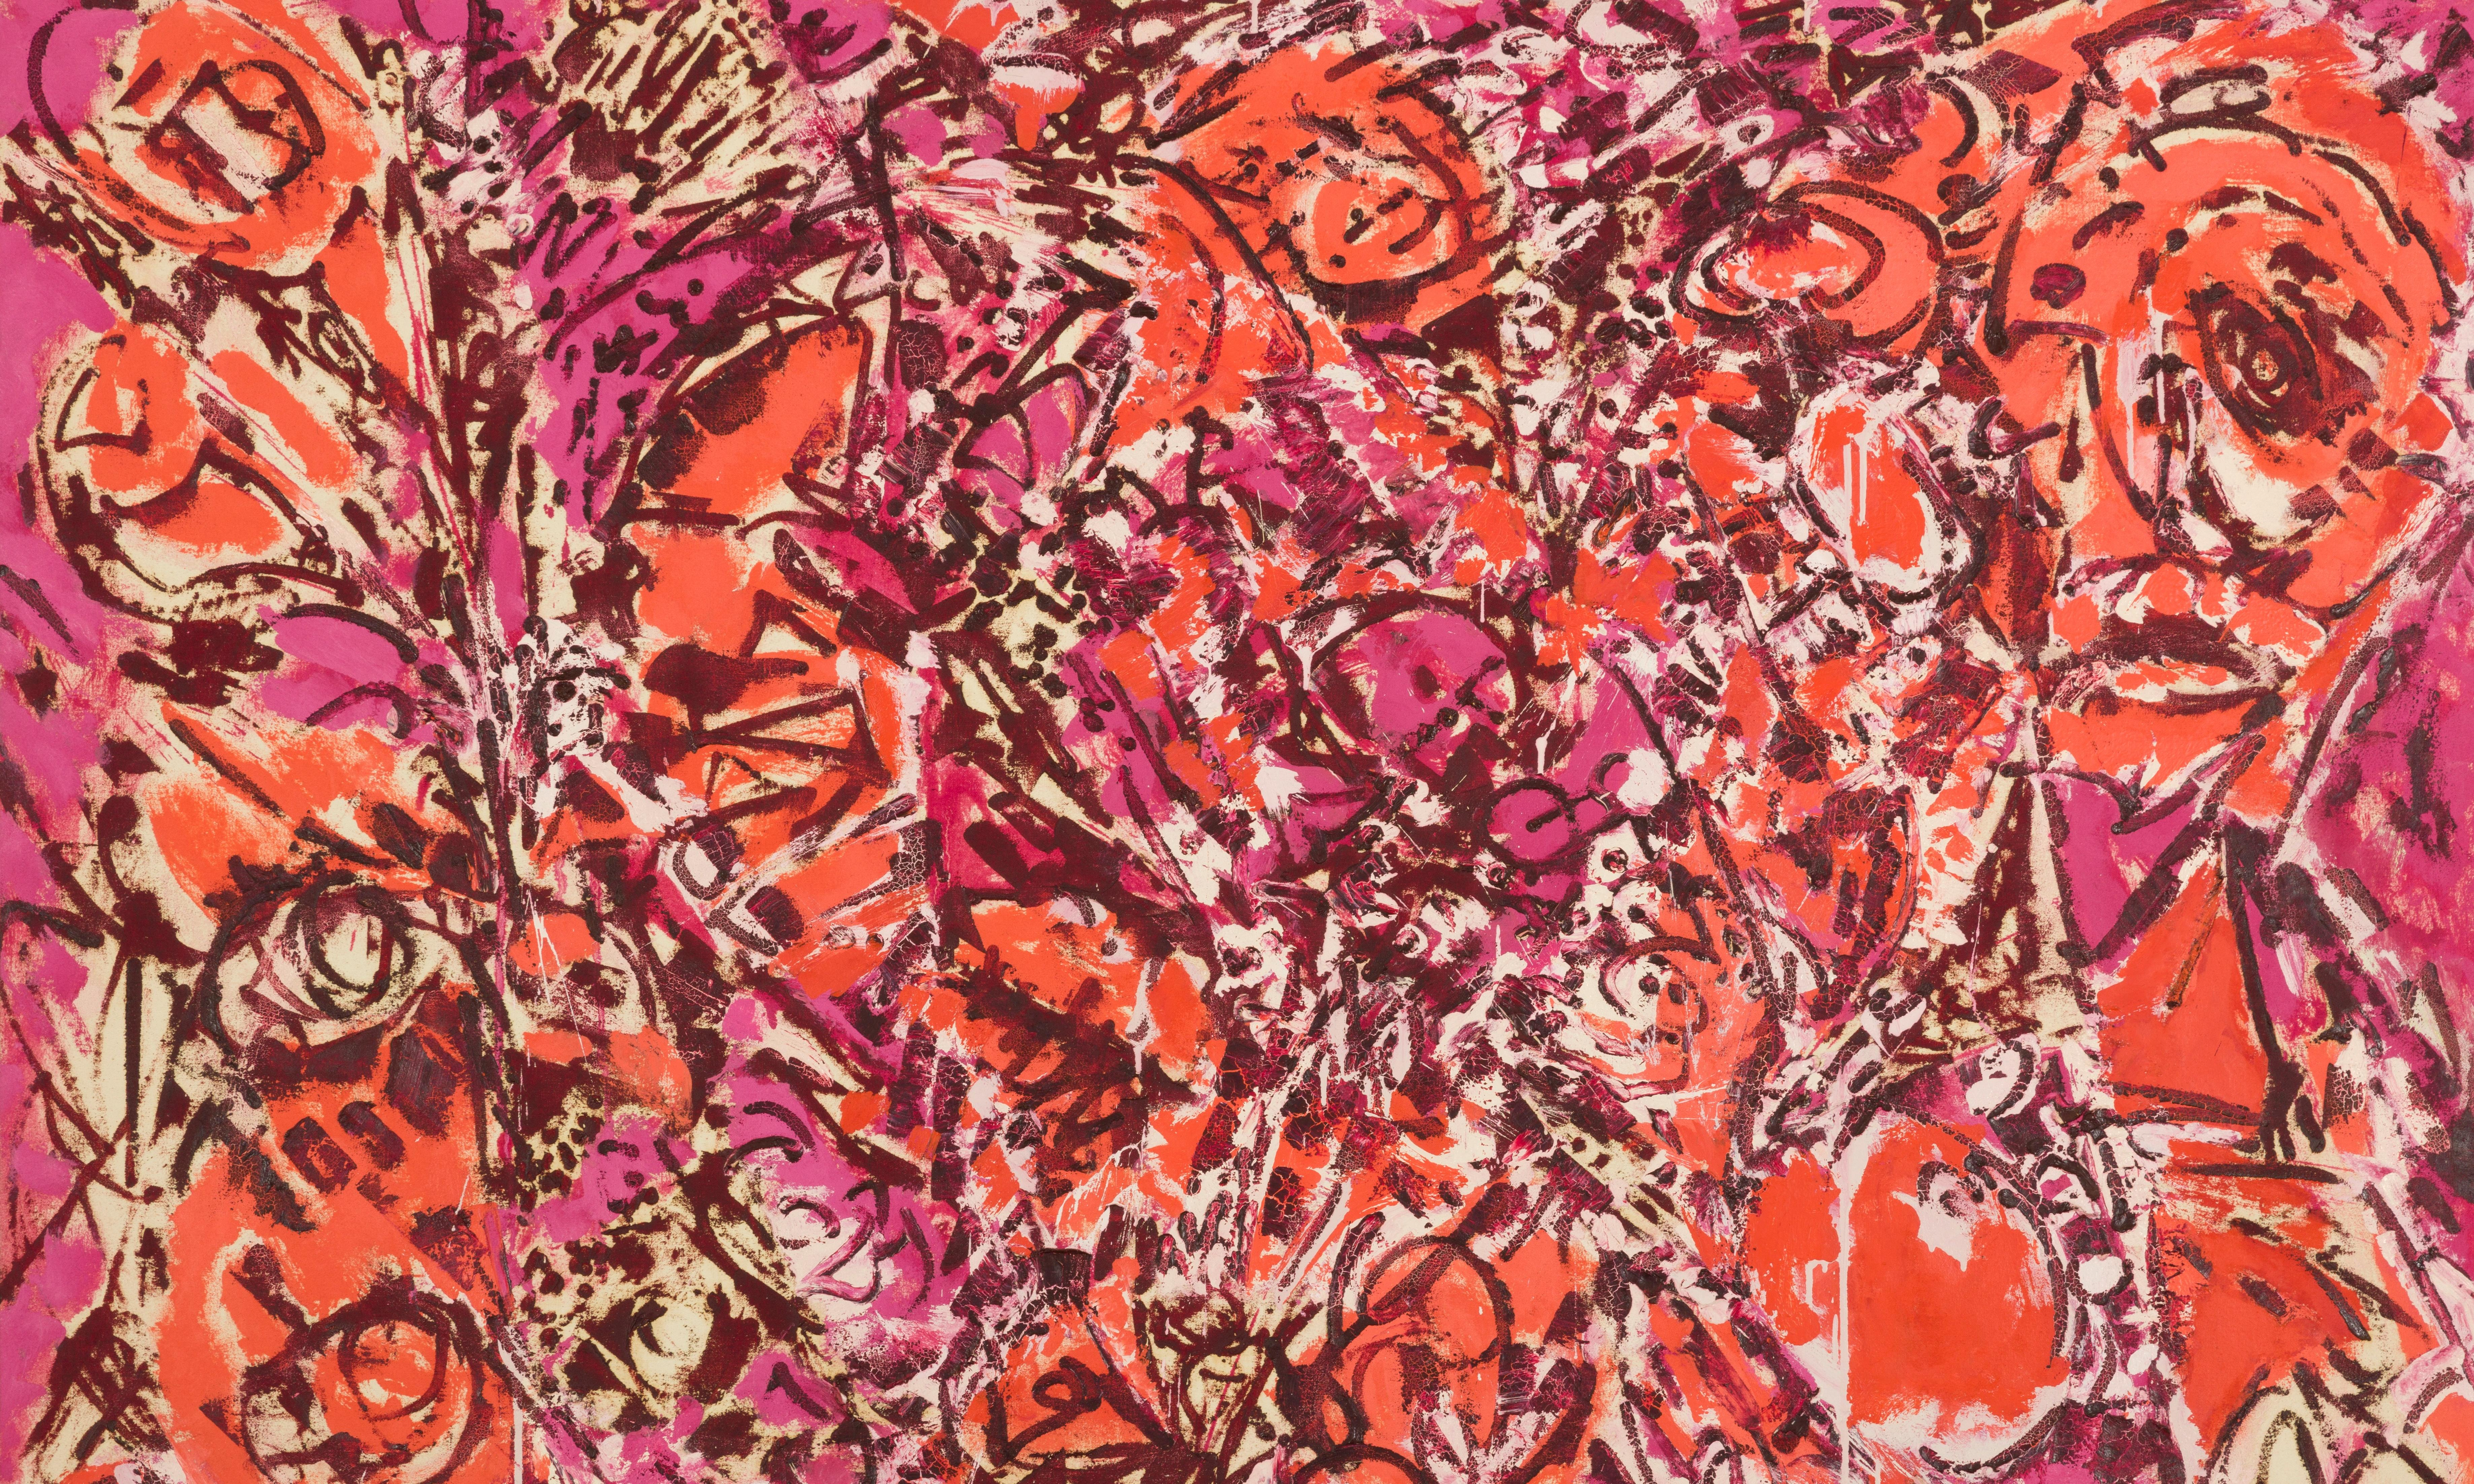 Storms of colour from a wild destructive genius – Lee Krasner review